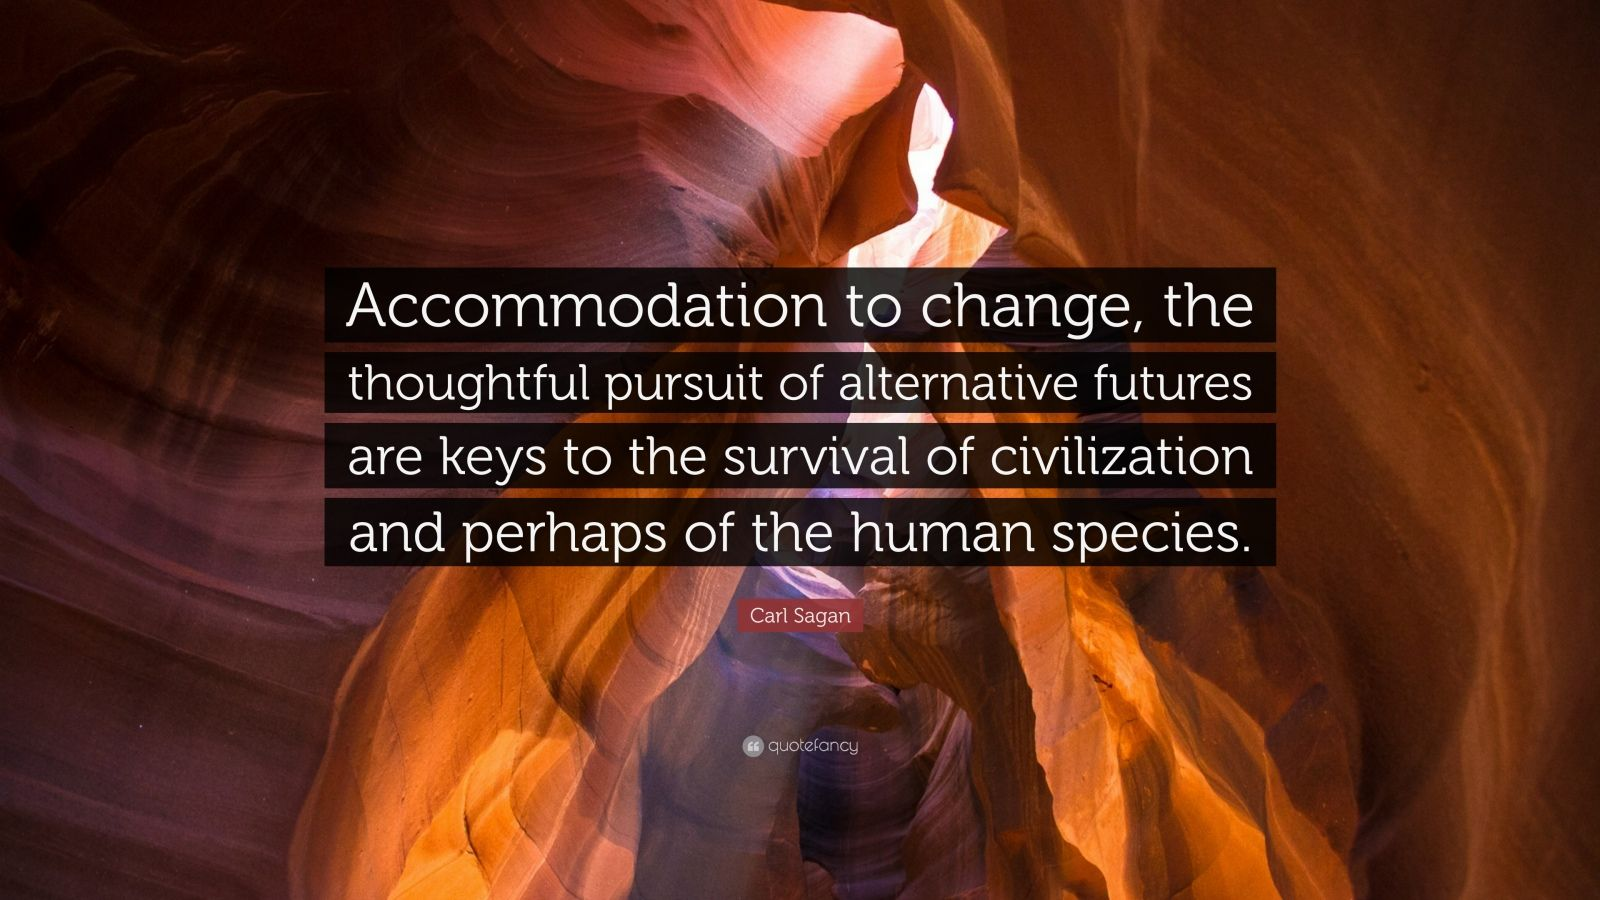 """Carl Sagan Quote: """"Accommodation to change, the thoughtful pursuit of alternative futures are keys to the survival of civilization and perhaps of the human species."""""""